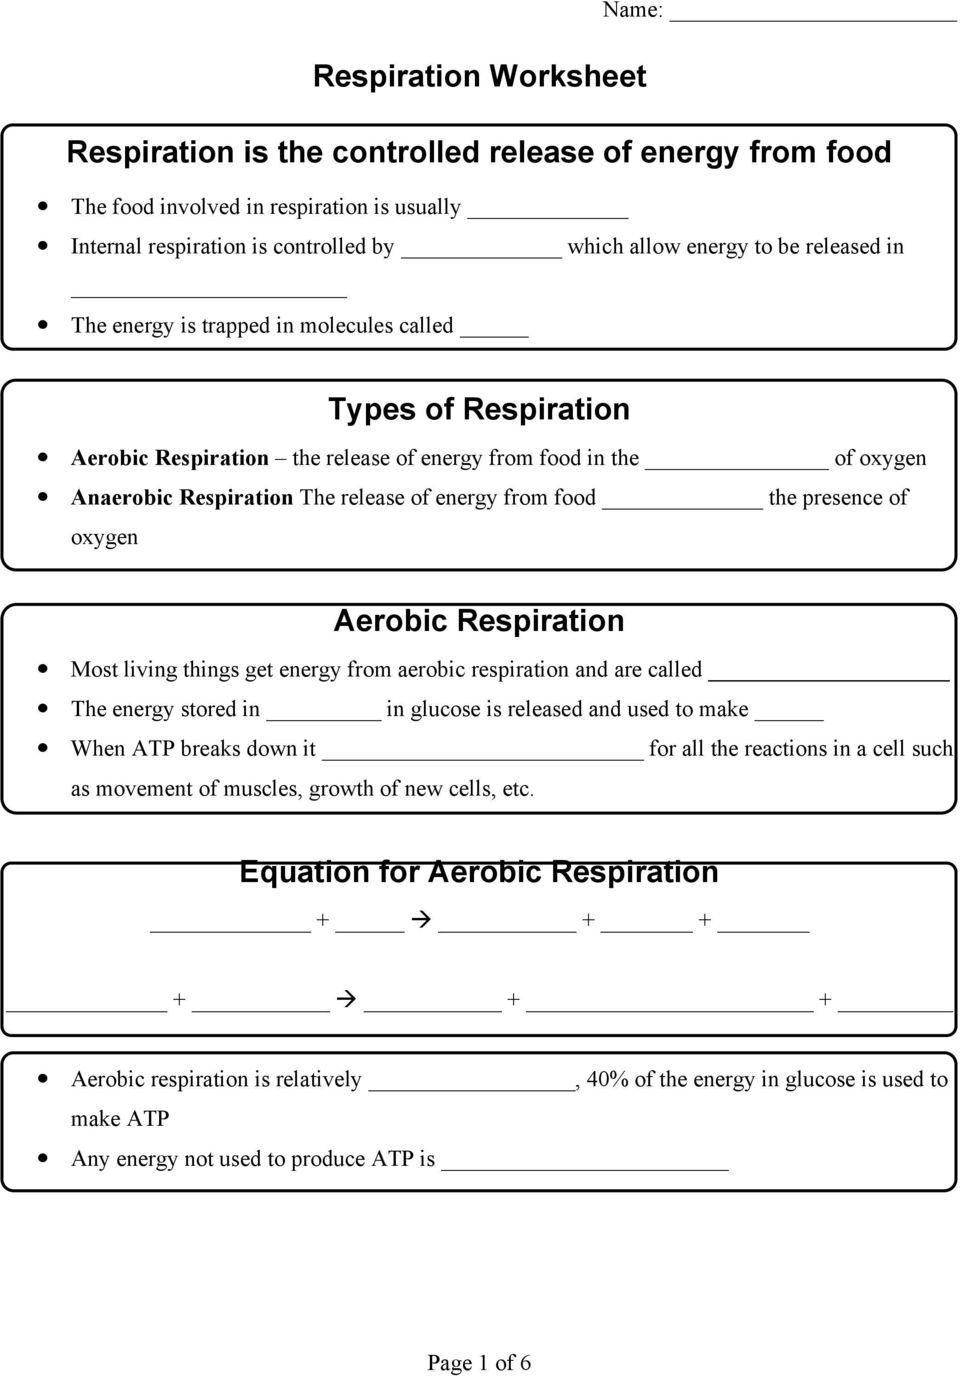 Respiration Worksheet Respiration Is The Controlled Release Of Energy From Food Types Of Respiration Aerobic Respiration Pdf Free Download